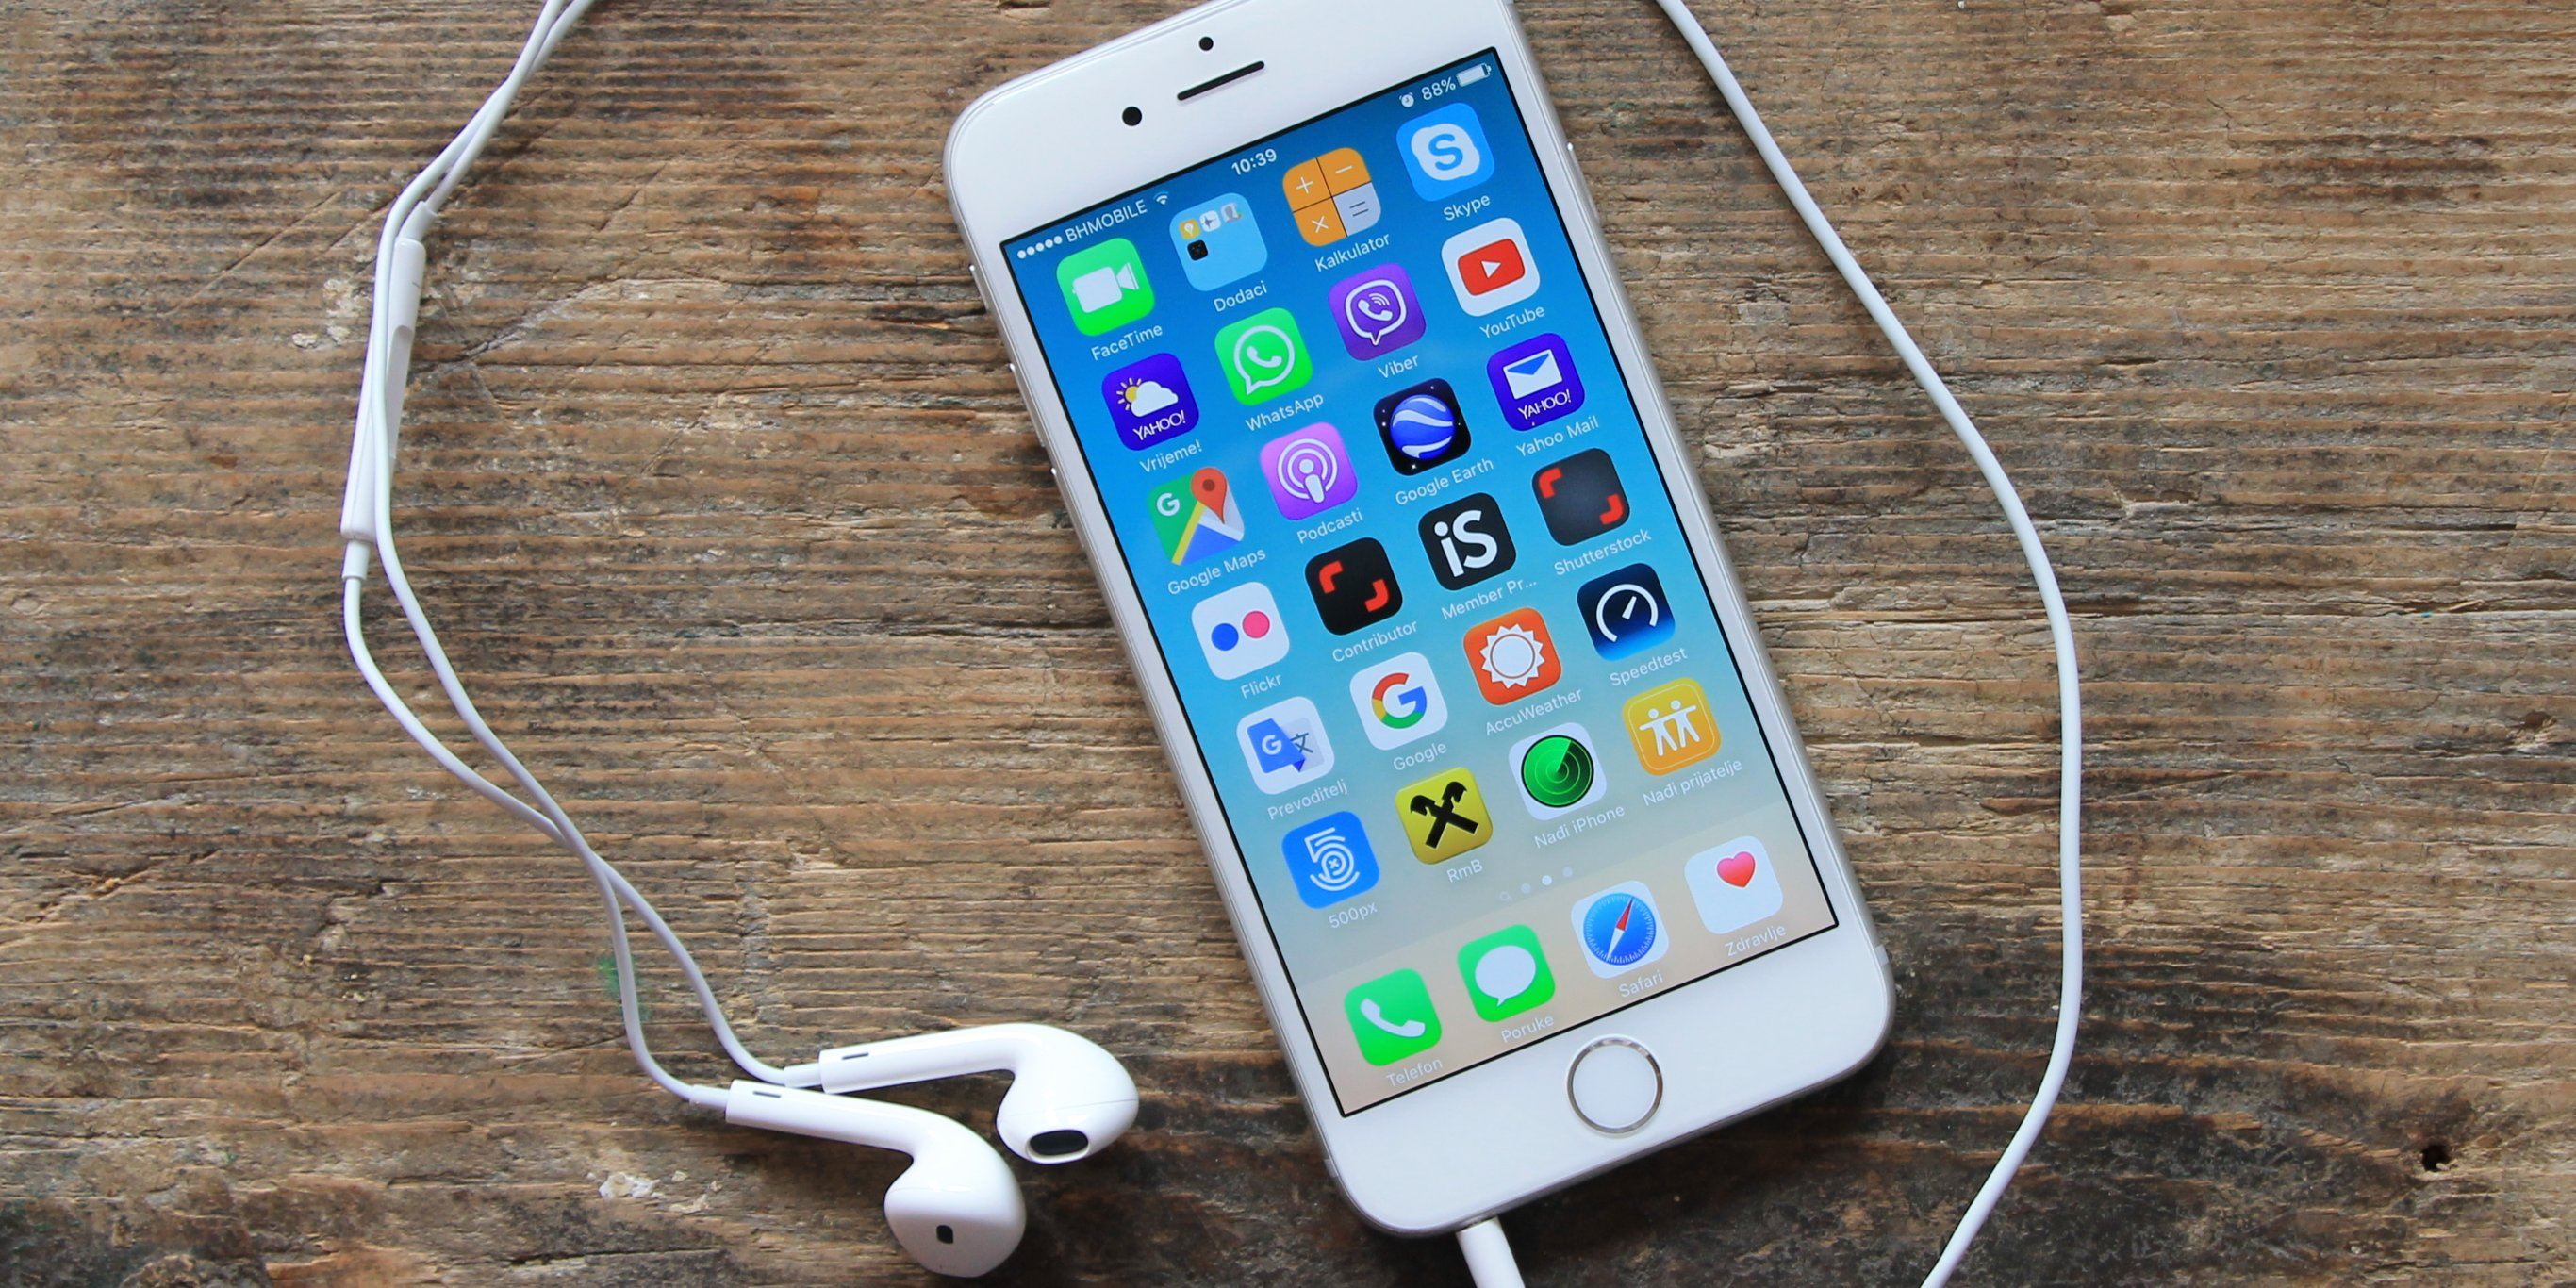 How to see how many songs you have on your iPhone, and how much storage space those songs are taking up